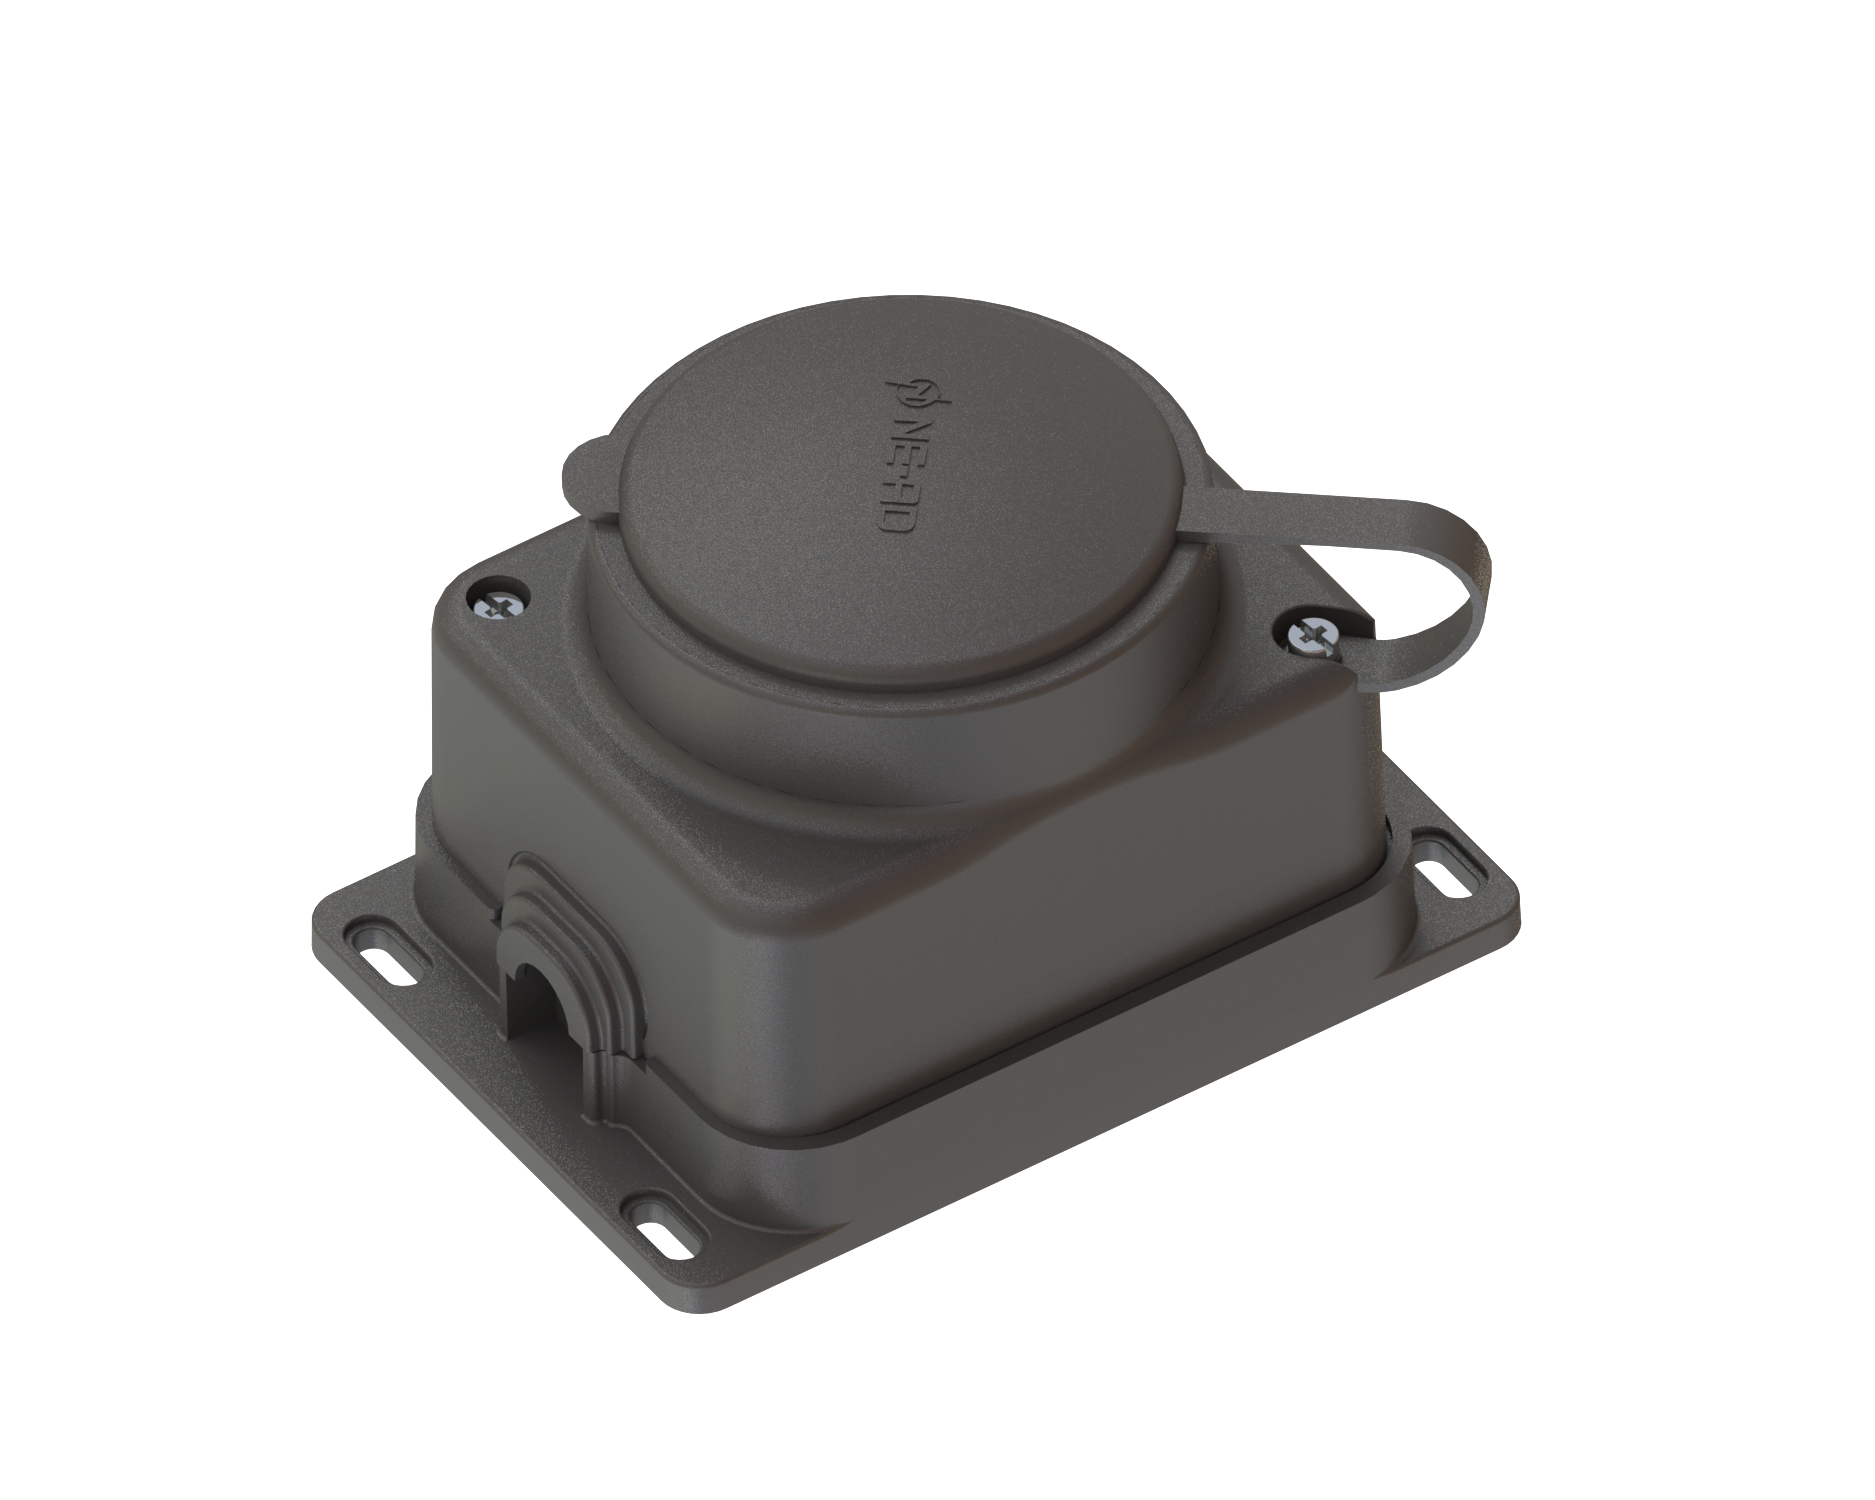 1*16 A Wall Socket With Cover / 4003